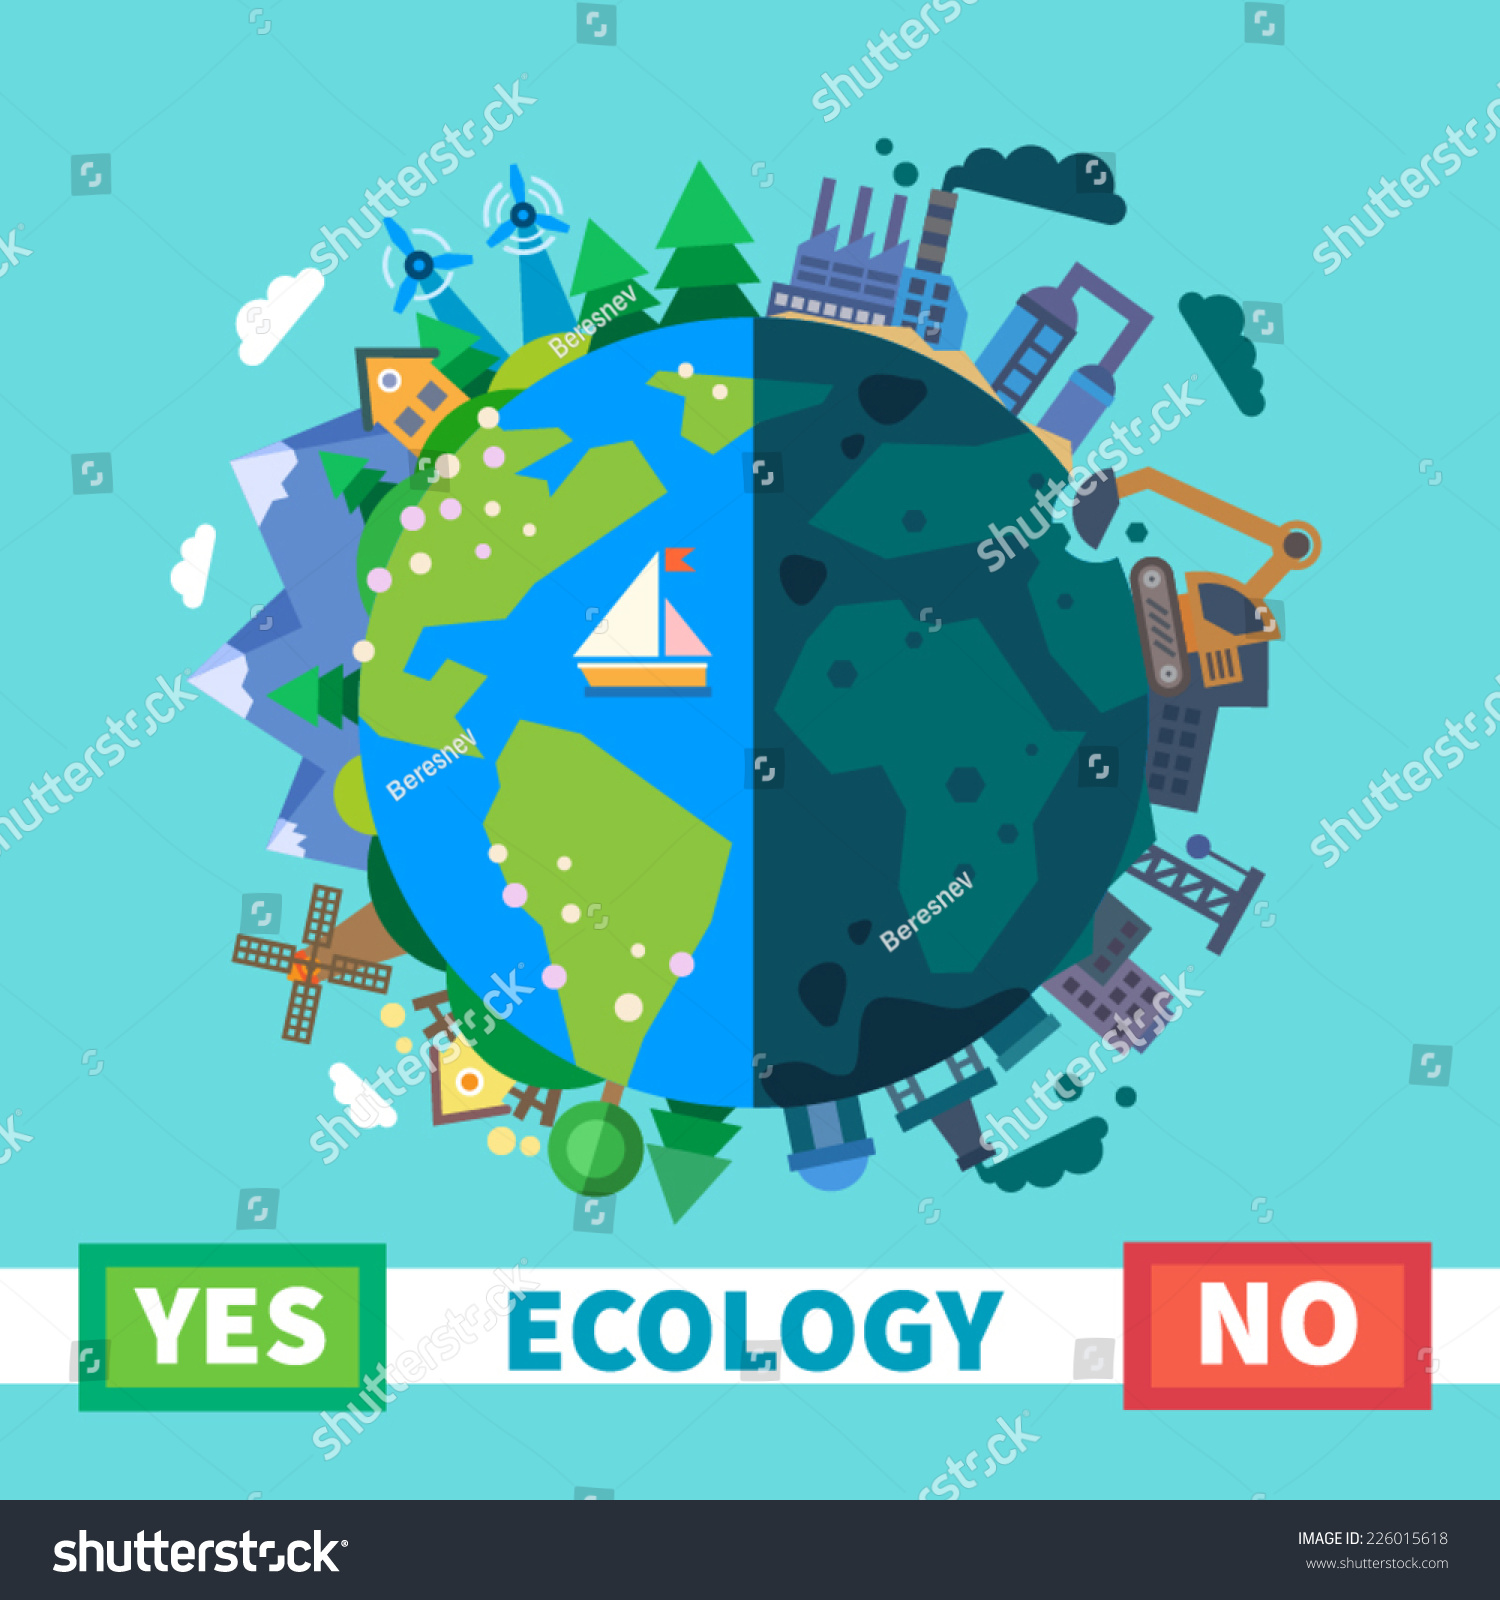 Nature Ecology: Ecology Environmental Protection Nature Pollution Vector